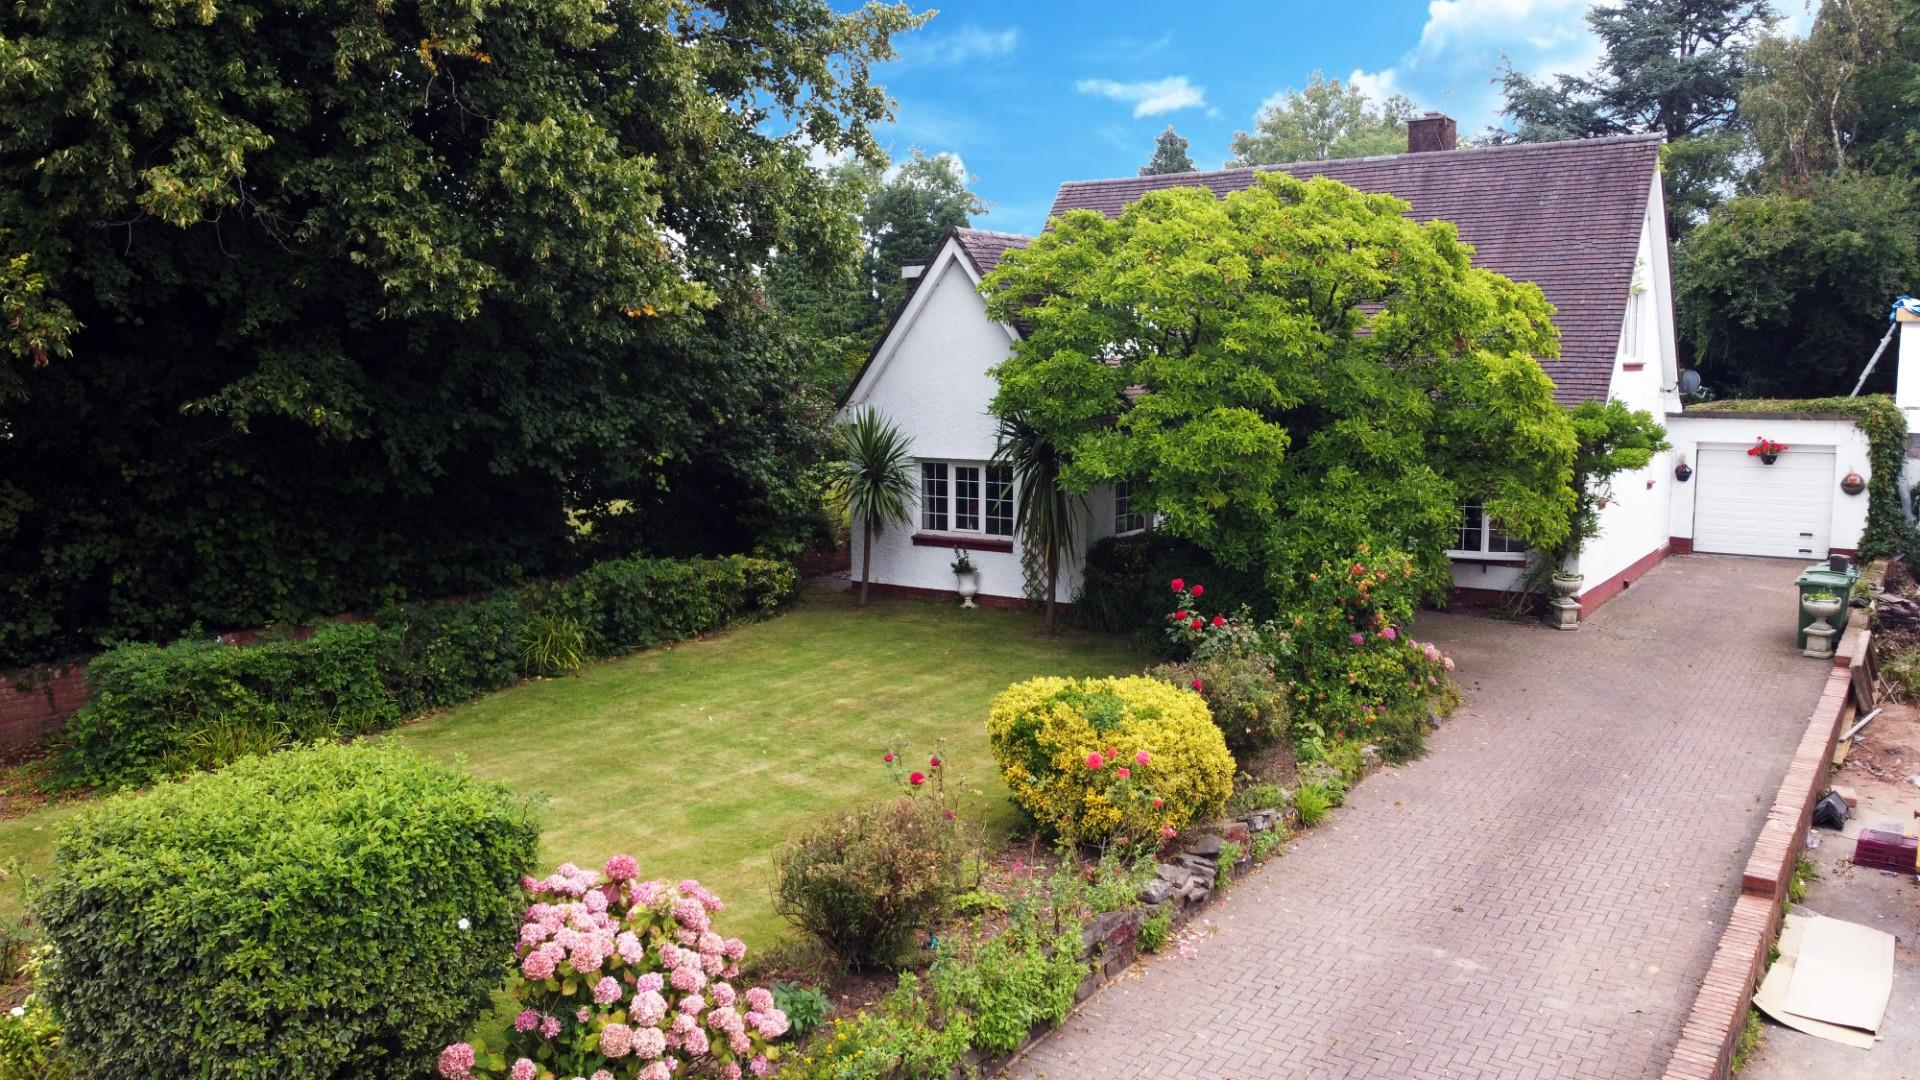 4 bed detached house for sale in Cyncoed Road, Cardiff - Property Image 1